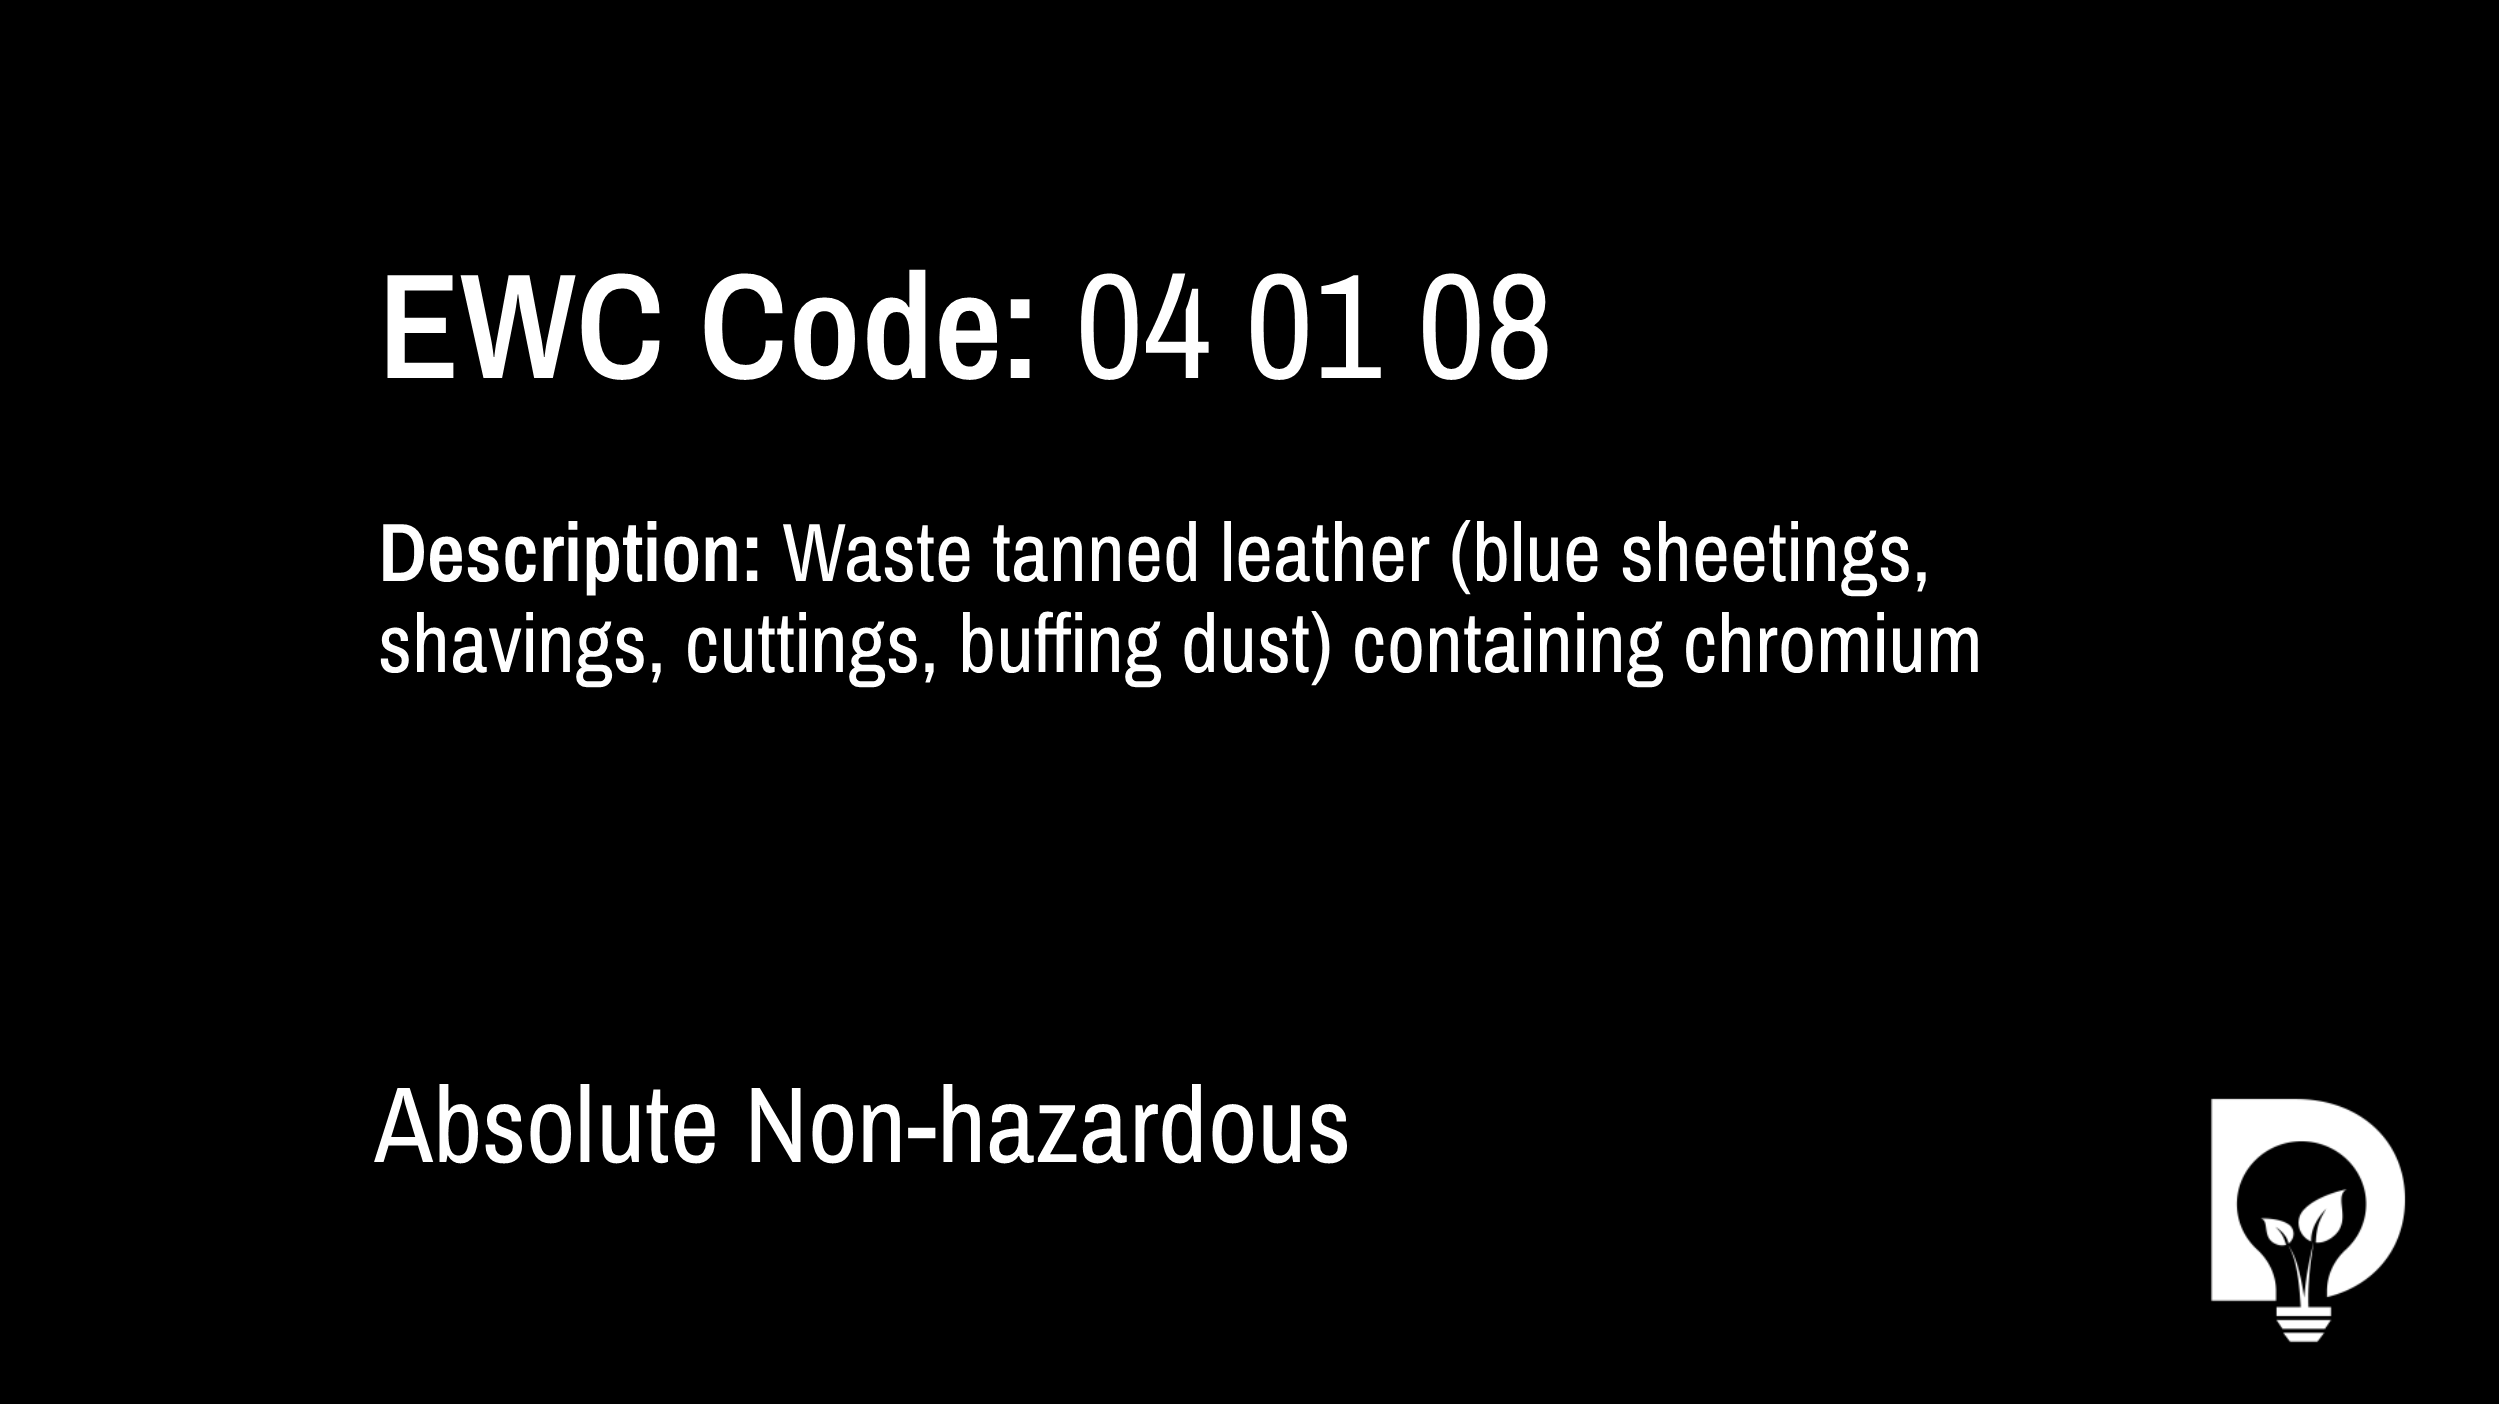 EWC Code: 04 01 08 - waste tanned leather (blue sheetings, shavings, cuttings, buffing dust) containing chromium. Type: Absolute Non-hazardous. Image by Dsposal